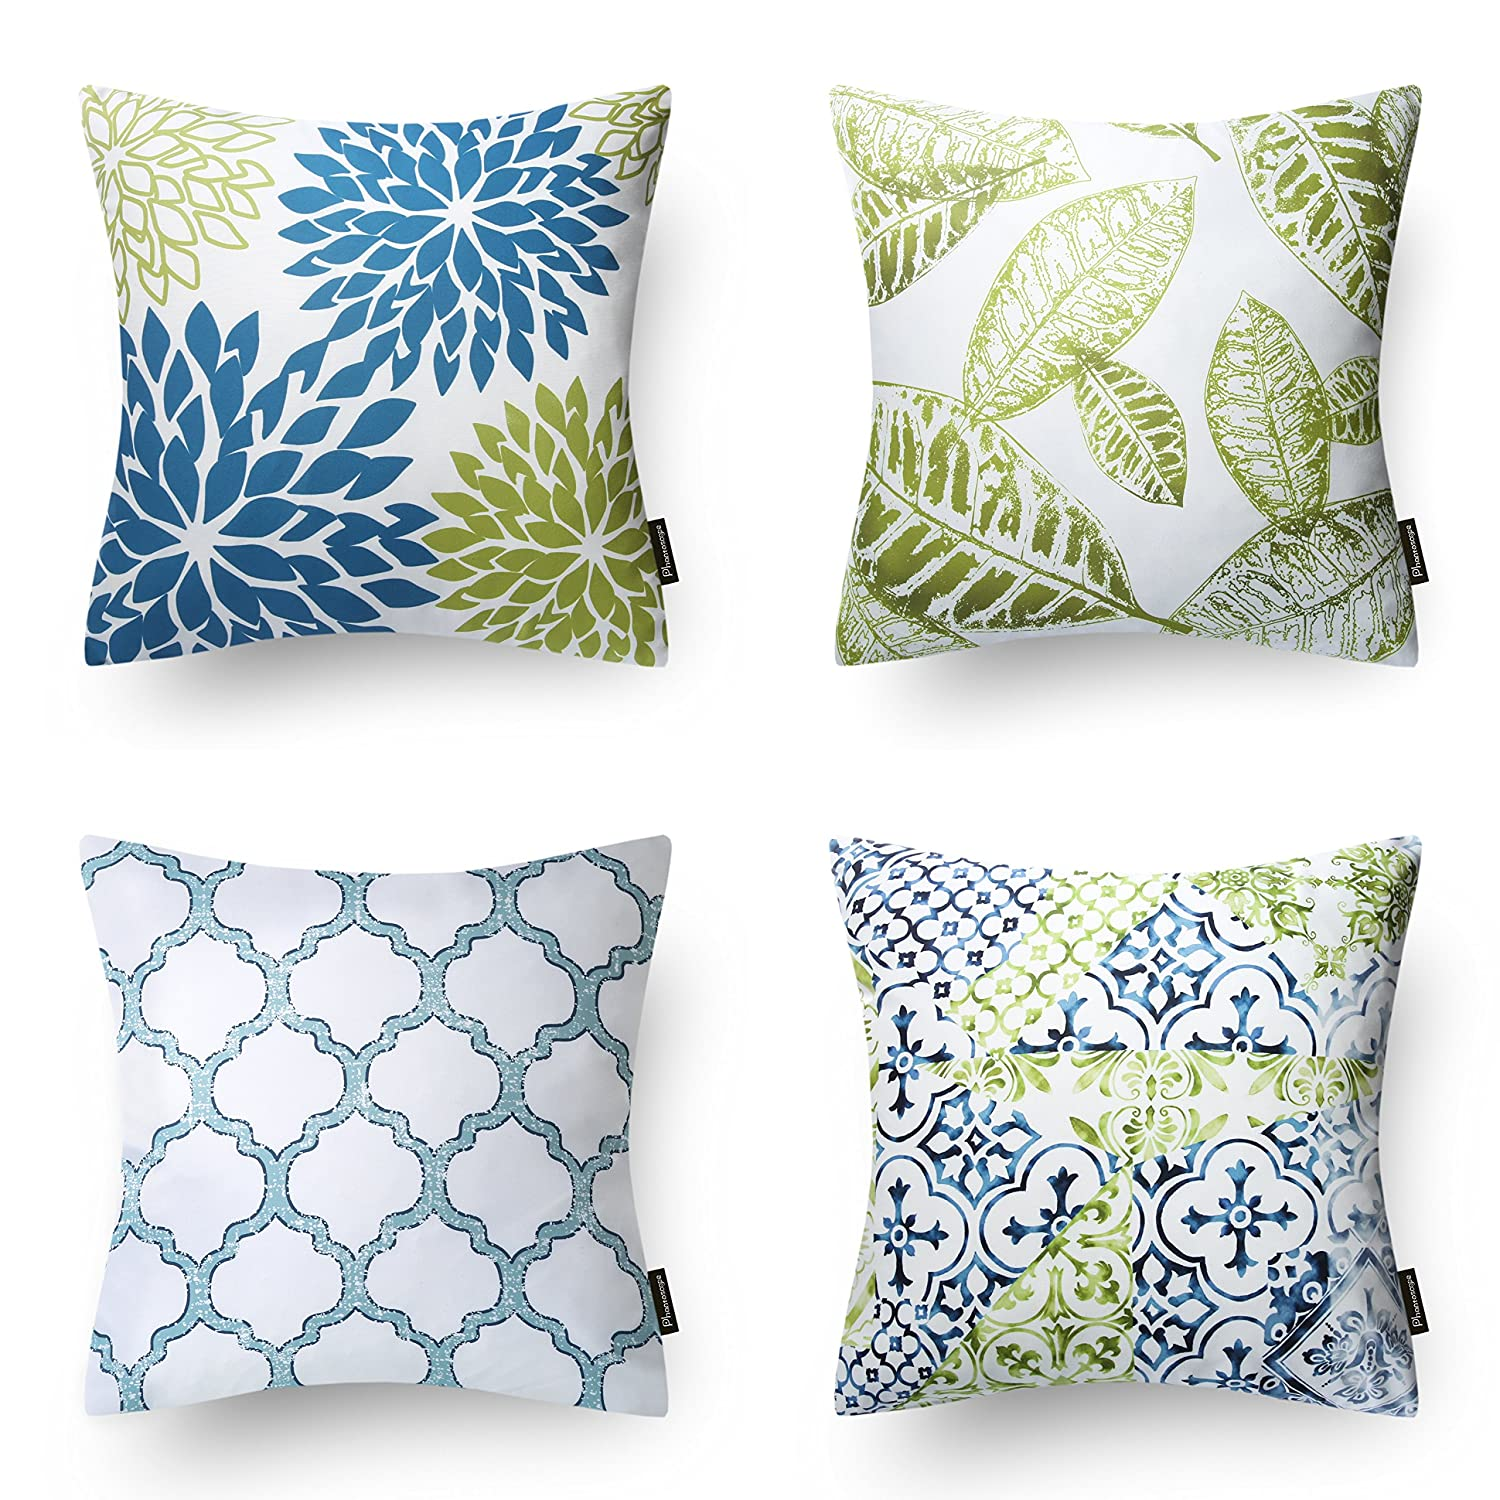 Decorative Pillow Set Shop Amazoncom Decorative Pillows